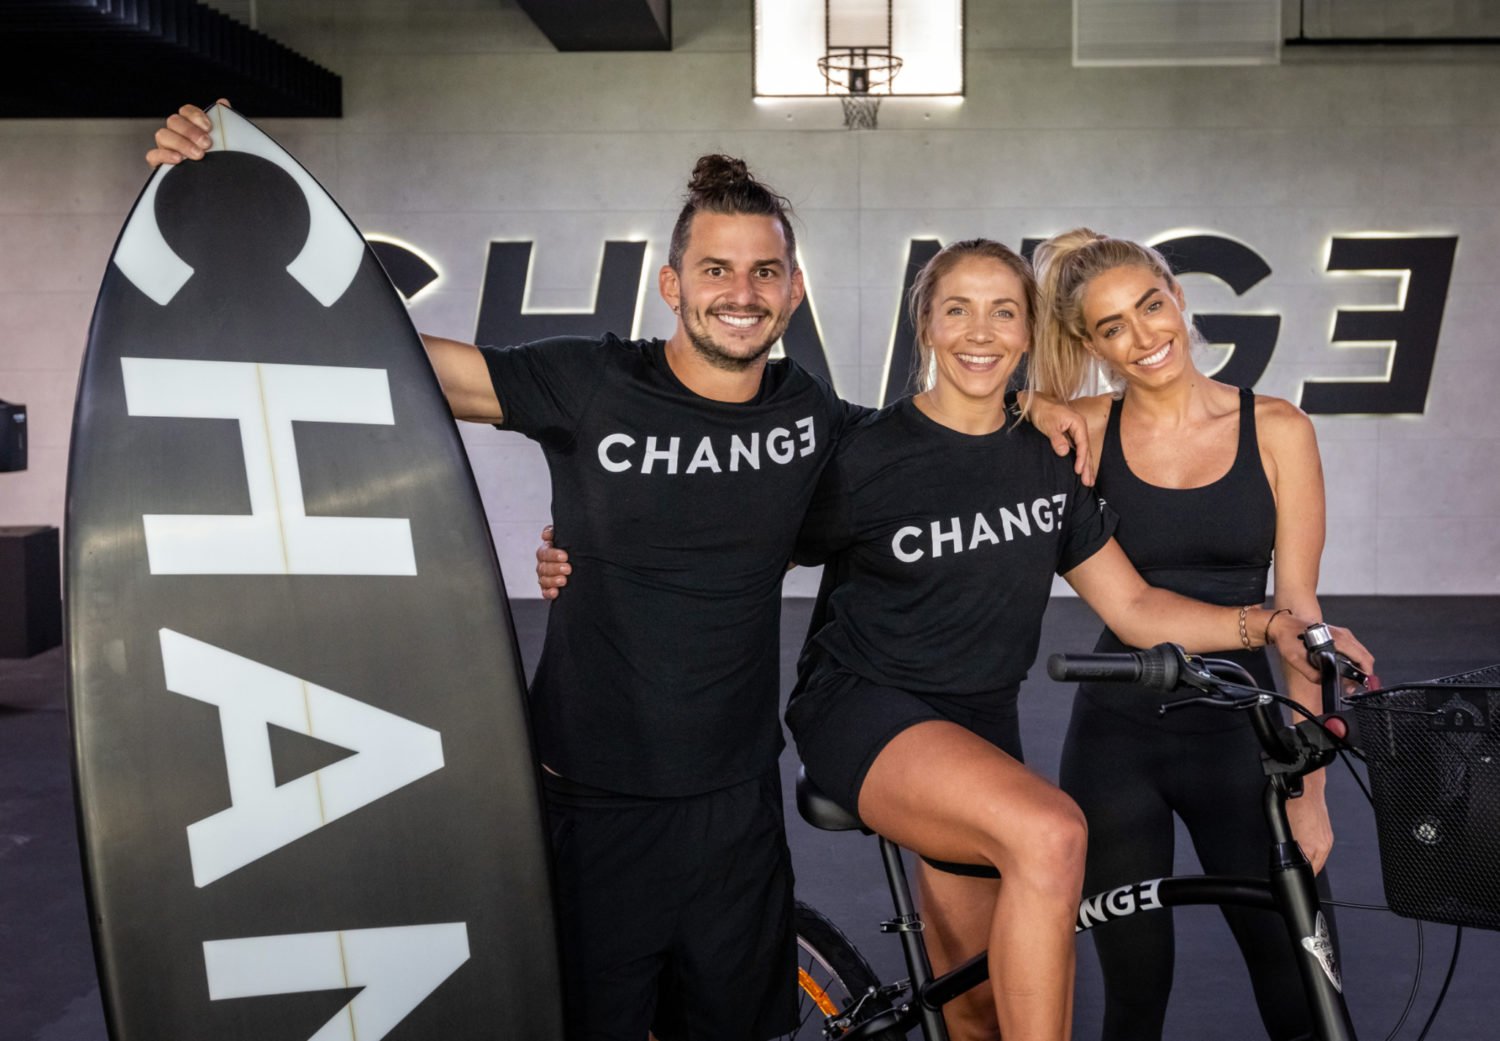 Bringing CHANG3 to the fitness industry